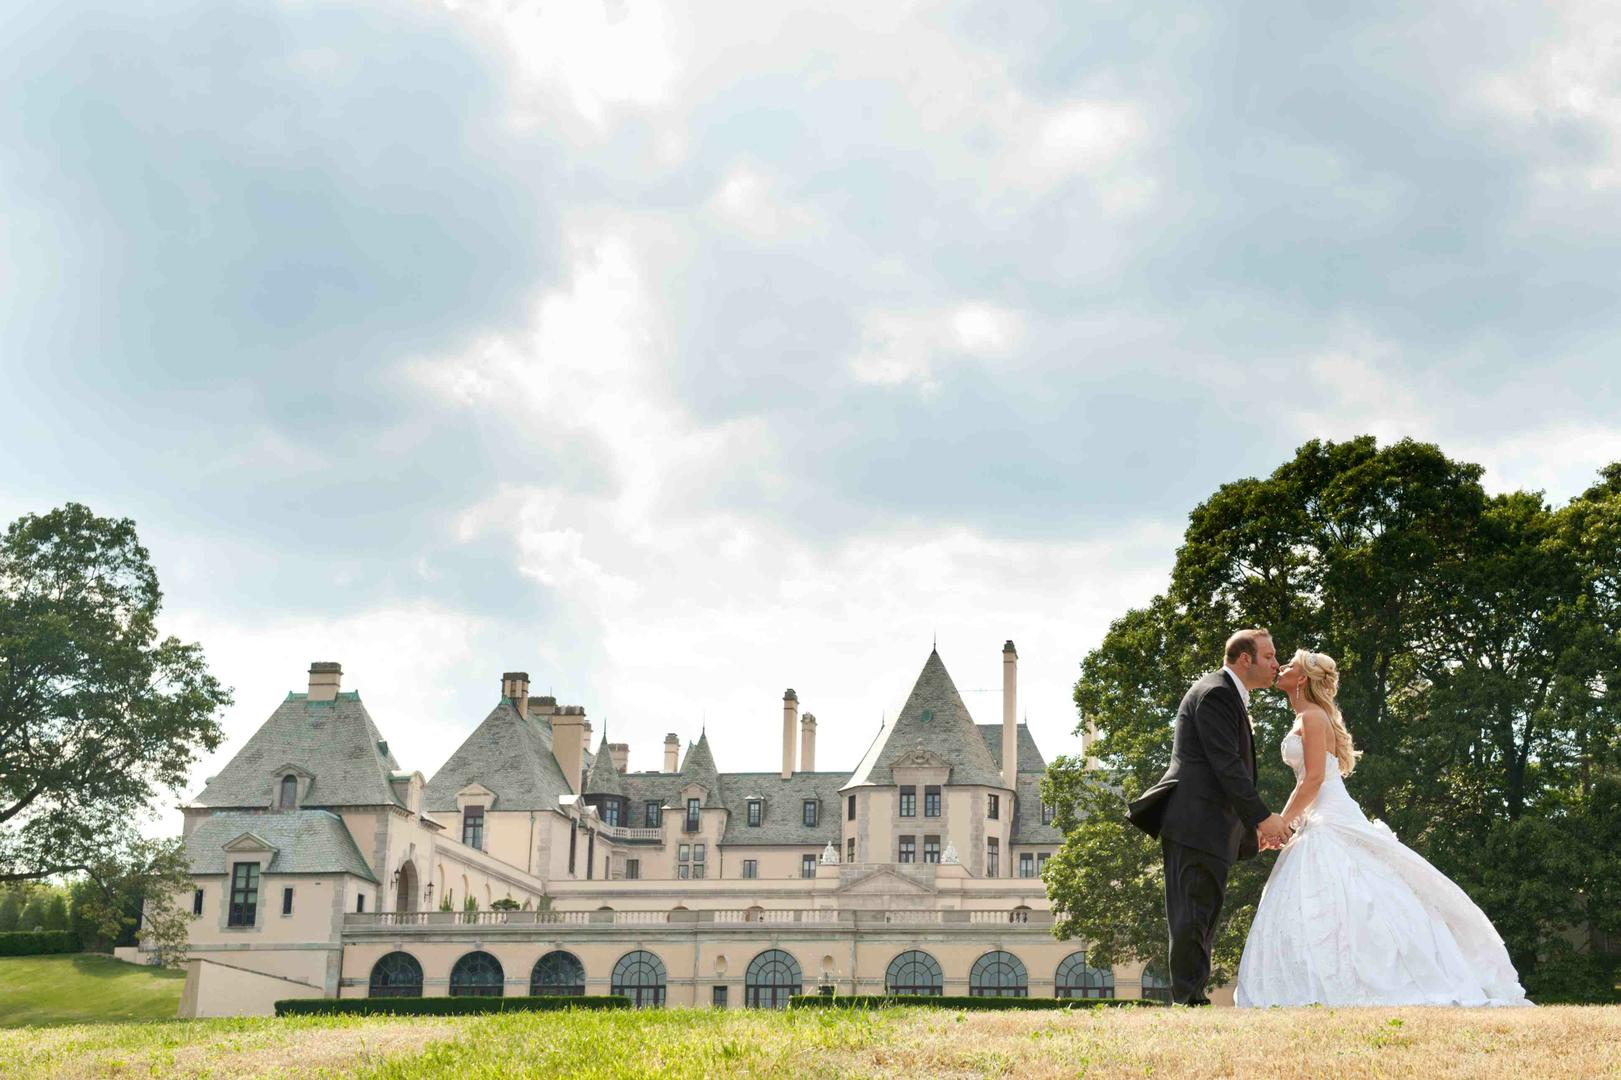 Castle Wedding Venues Ny | Castle Wedding Venues Unique Wedding Venues Oheka Castle The